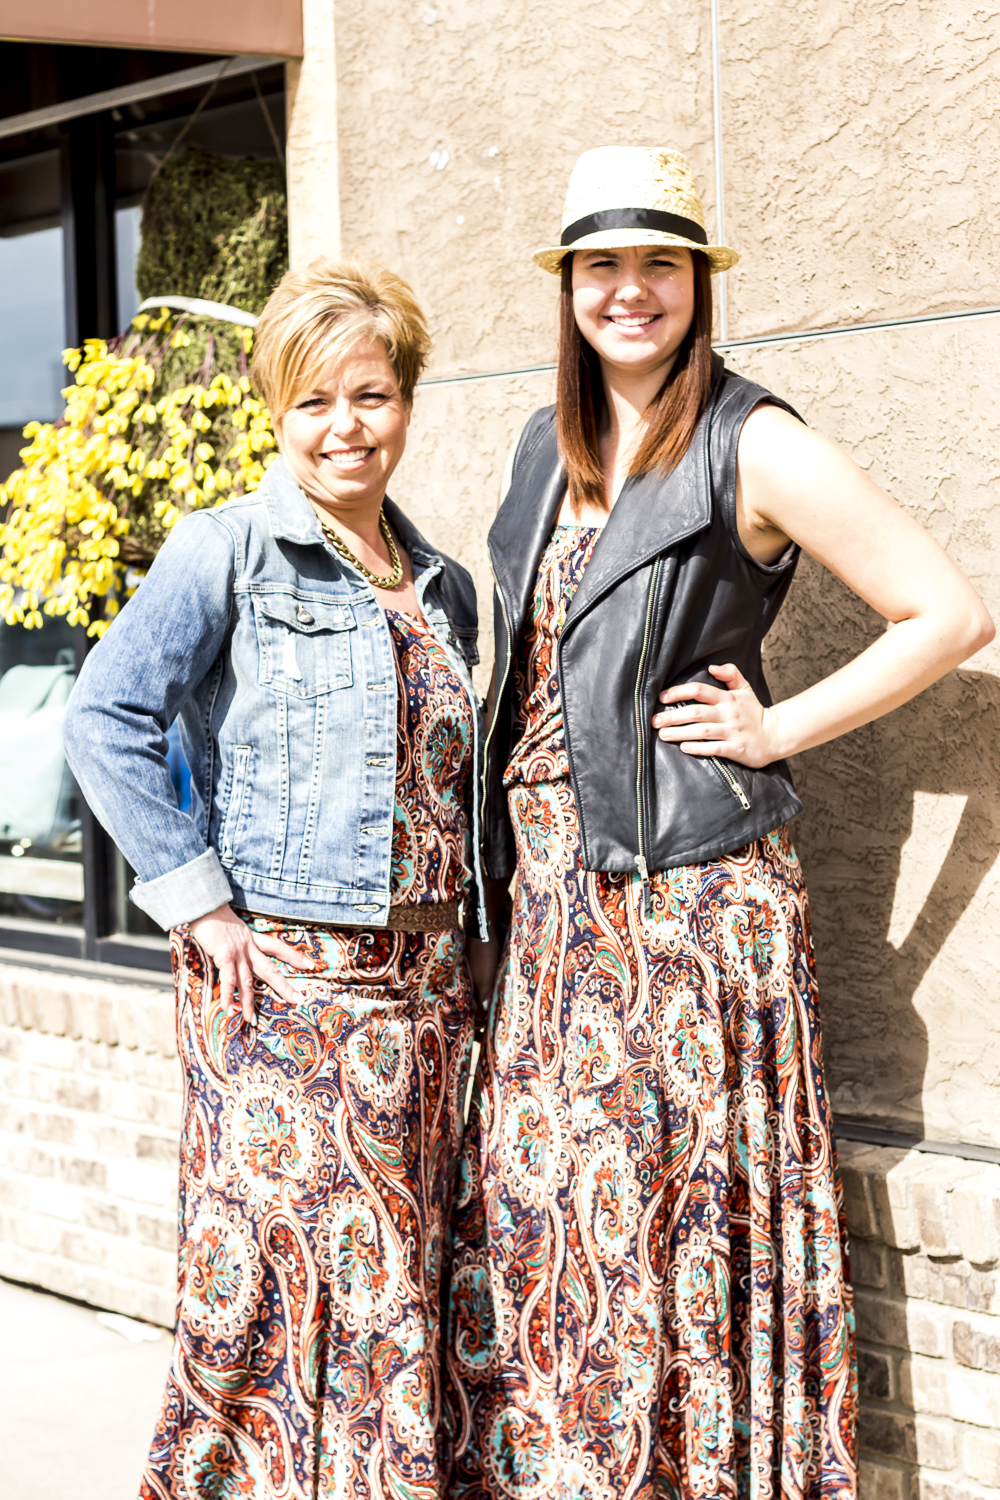 bella-maas-boutique-womens-clothing-store-edmonton-sherwood-park-st-albert-14